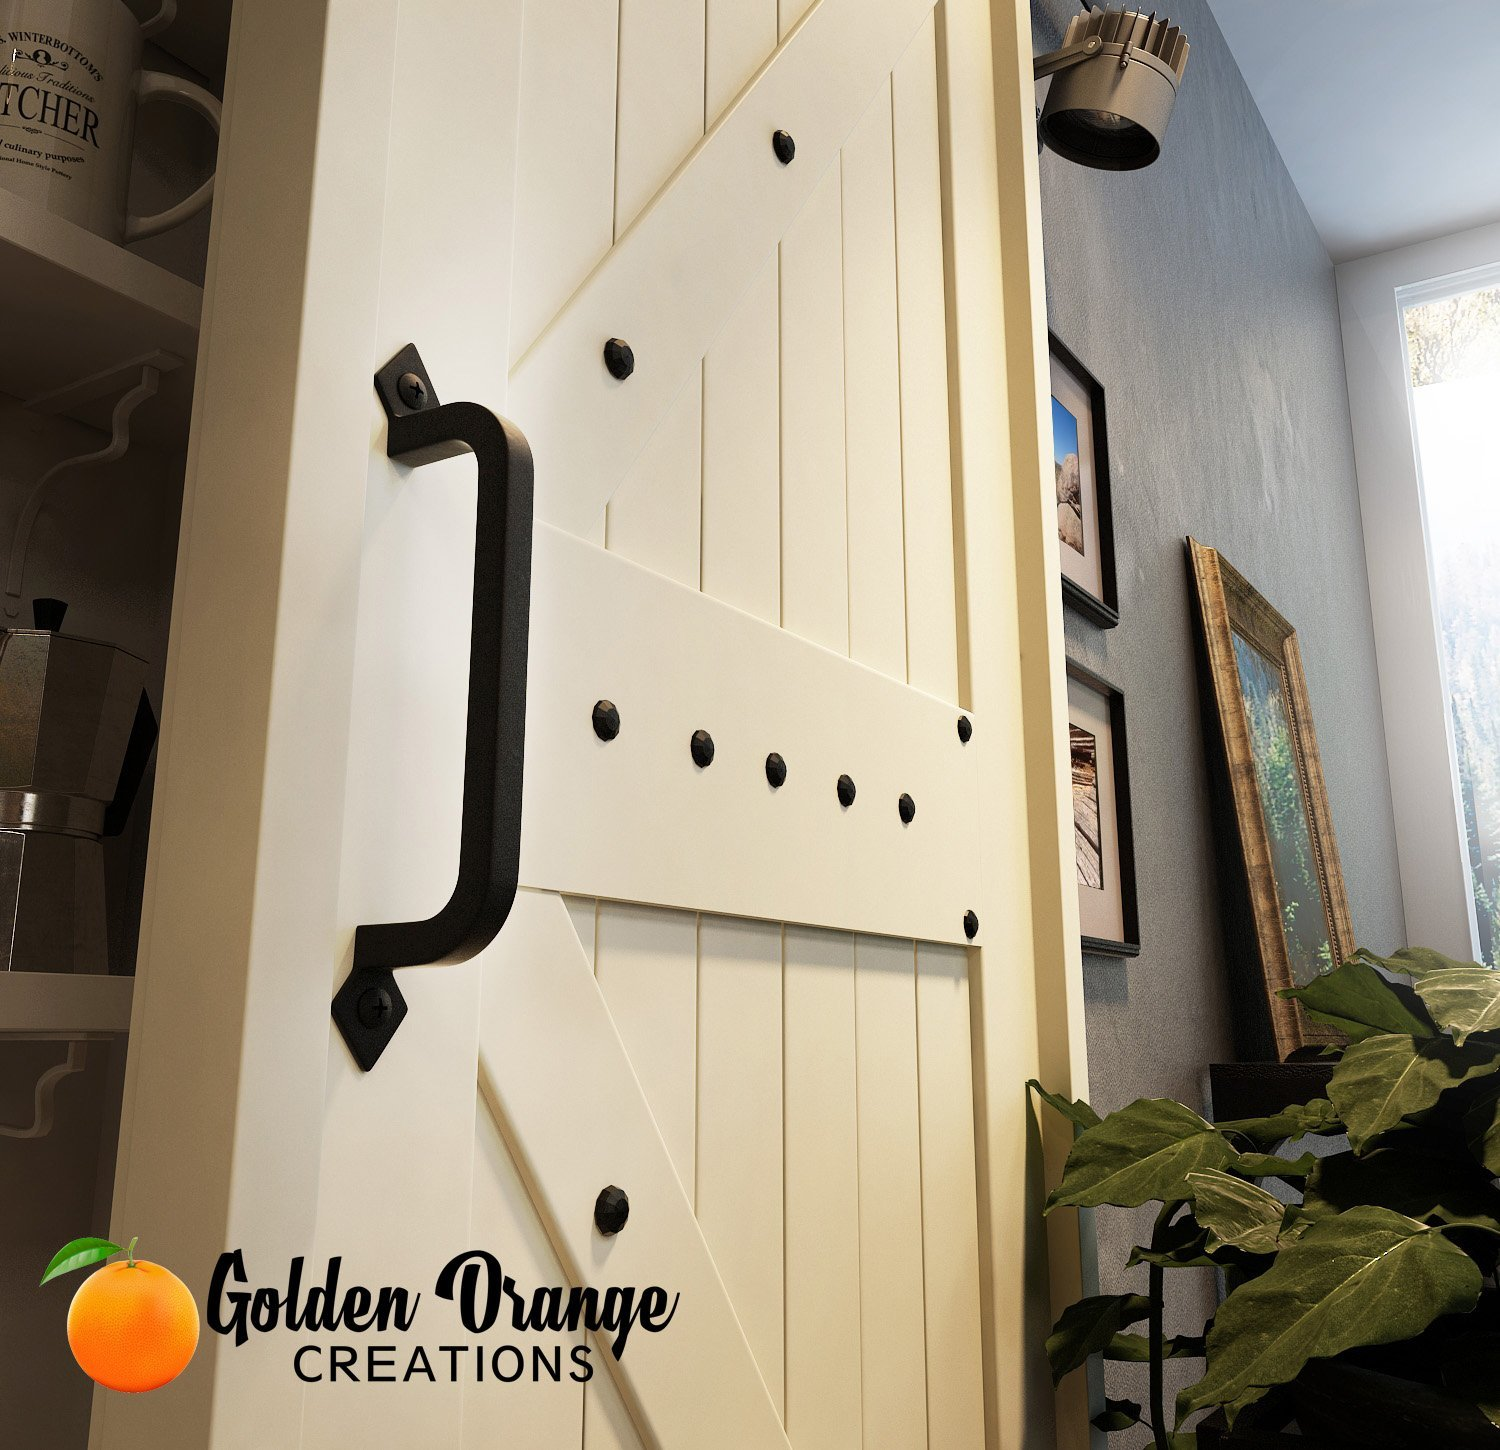 9-3/4'' Antique Barn Door Pull Handle with 2 Matching Black Screws - for Custom and Luxury Sliding Barn Doors, Pantry, Closet, Furniture, Garage, Gate, Shed - Solid Cast Iron Hardware Handle by Golden Orange Creations (Image #10)